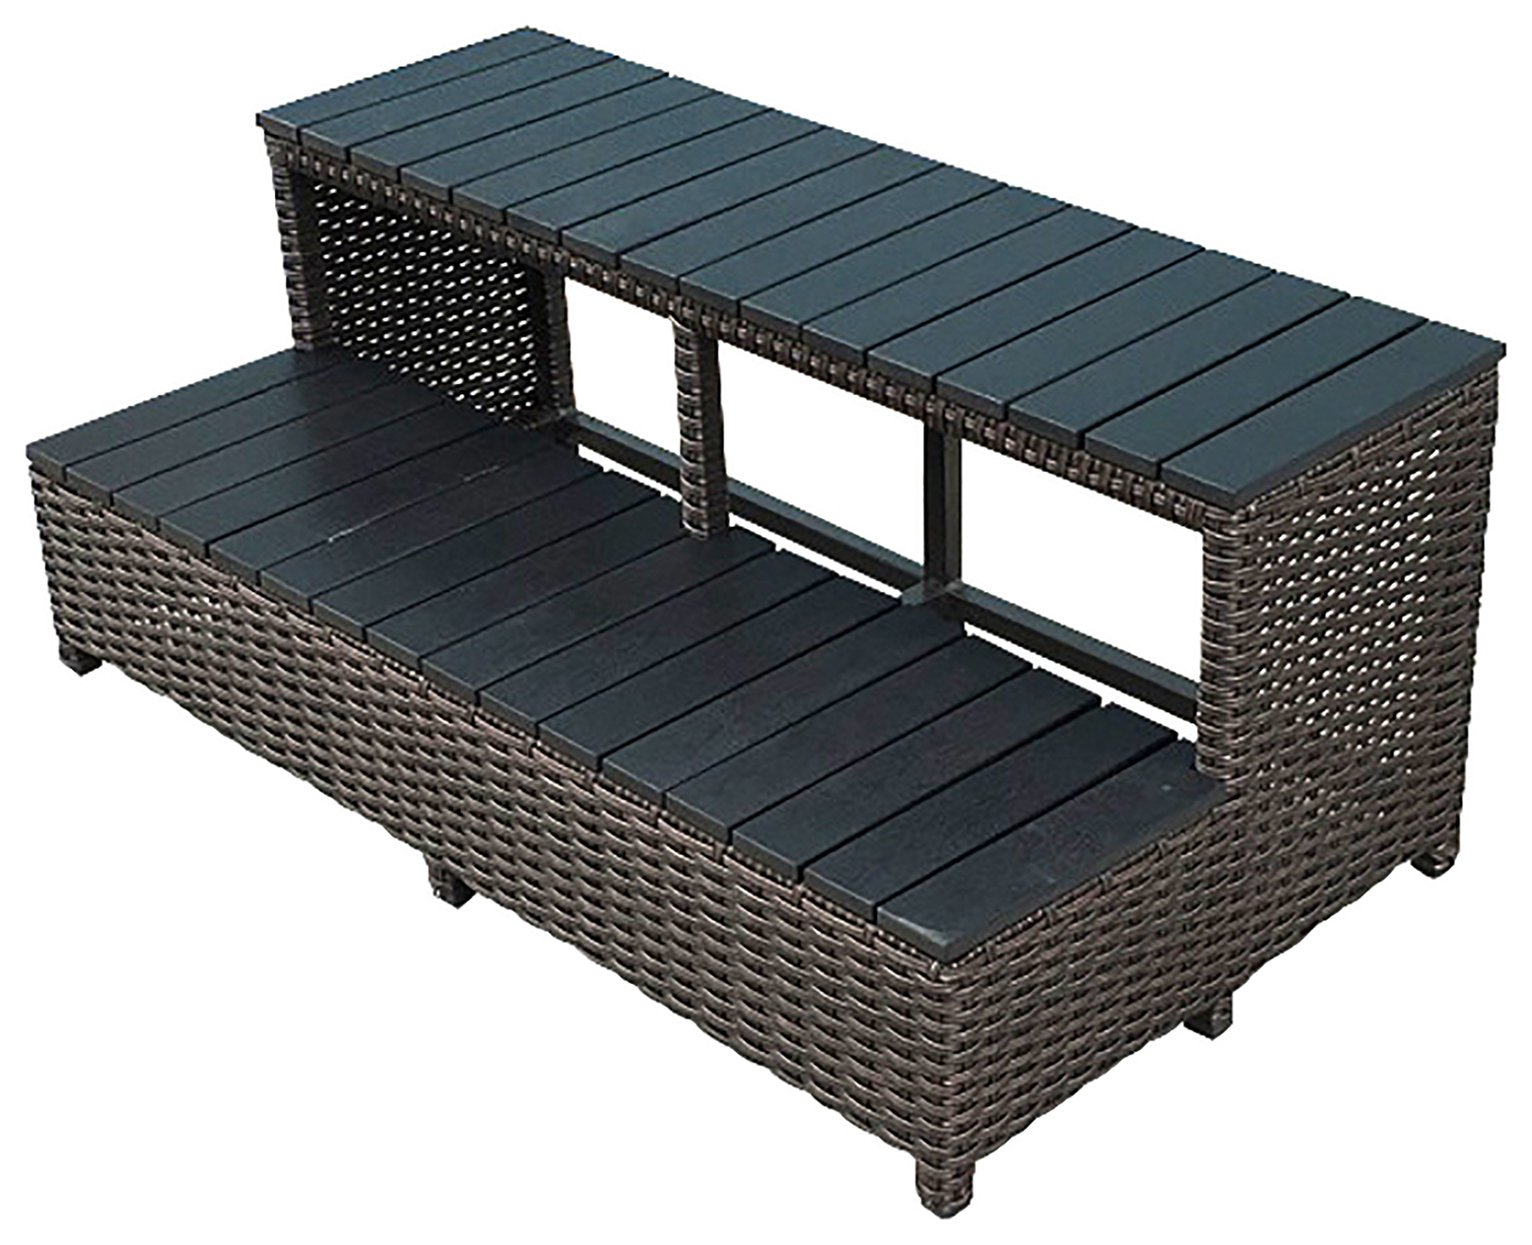 Canadian Spa Wicker Spa Step 90 inch at Argos review